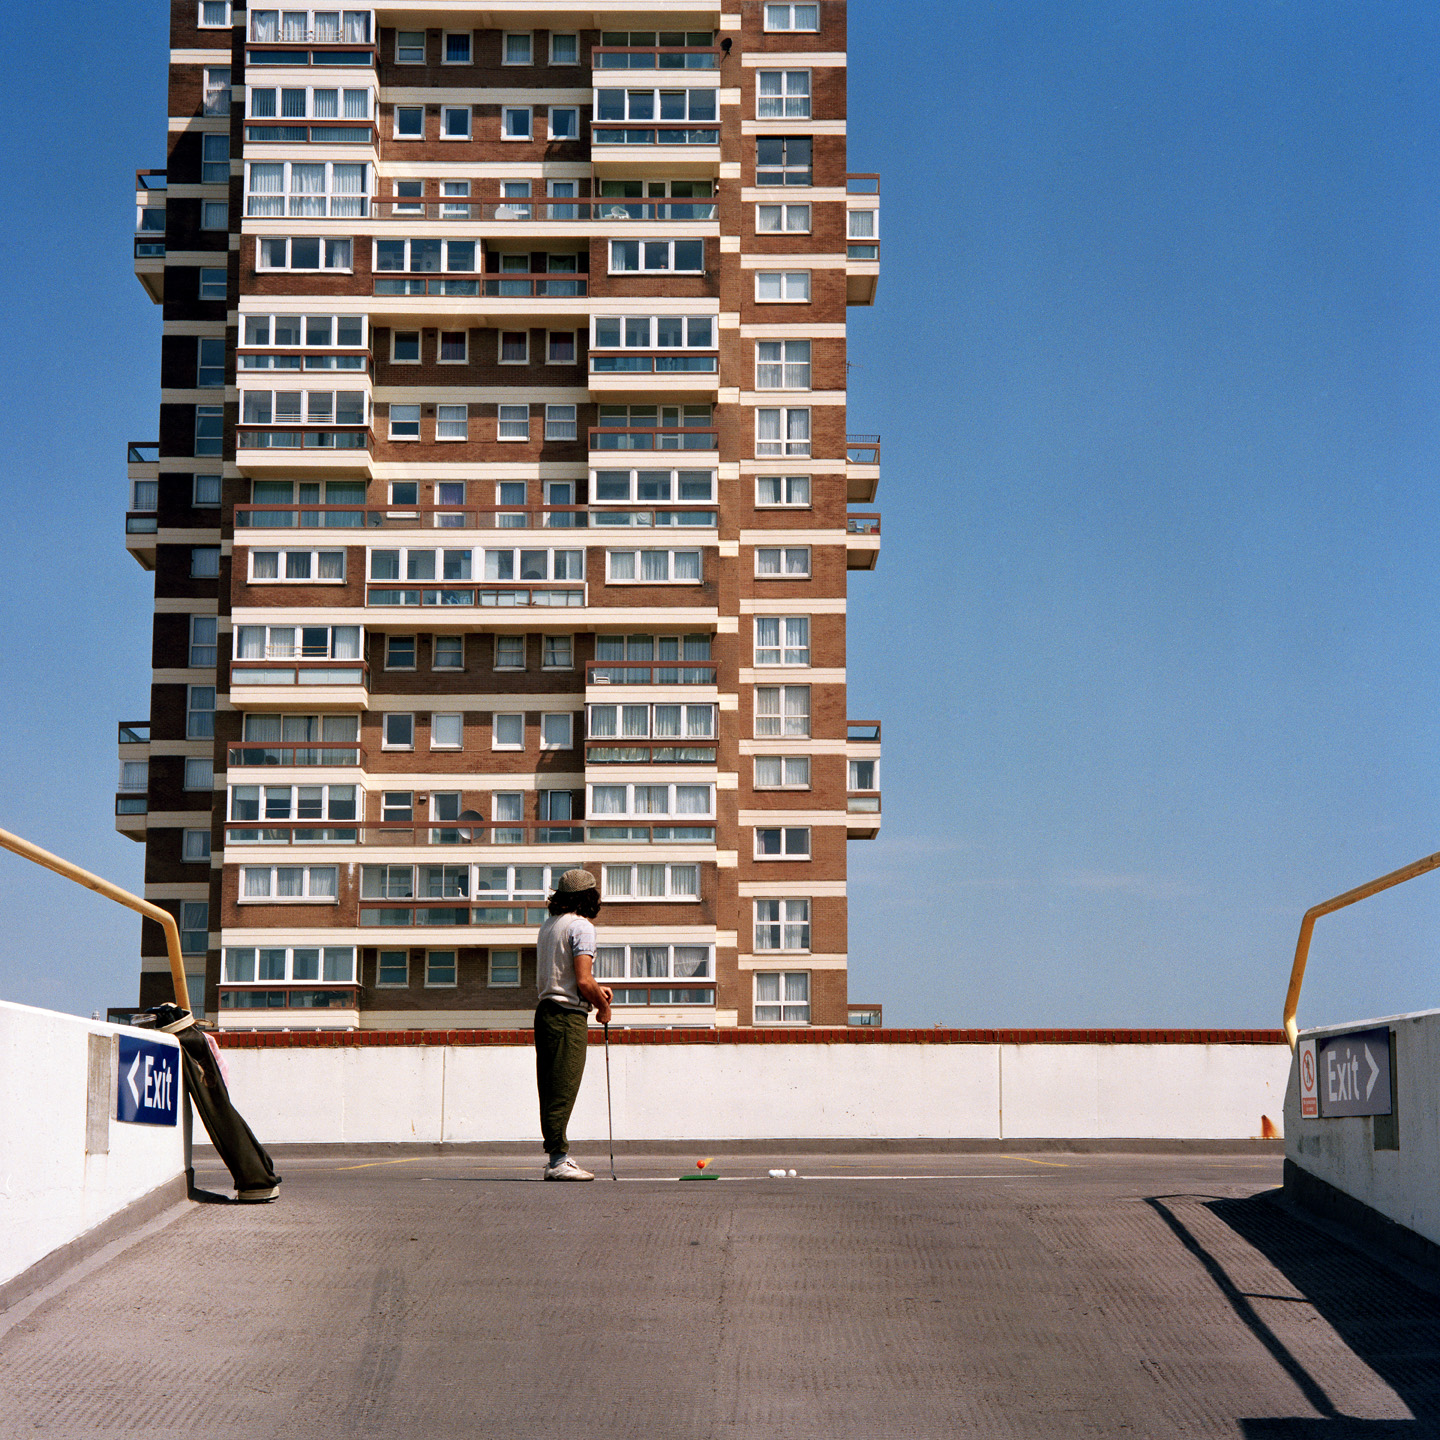 City Limits by John House (2003). One of the images from The Shot I Never Forgot.